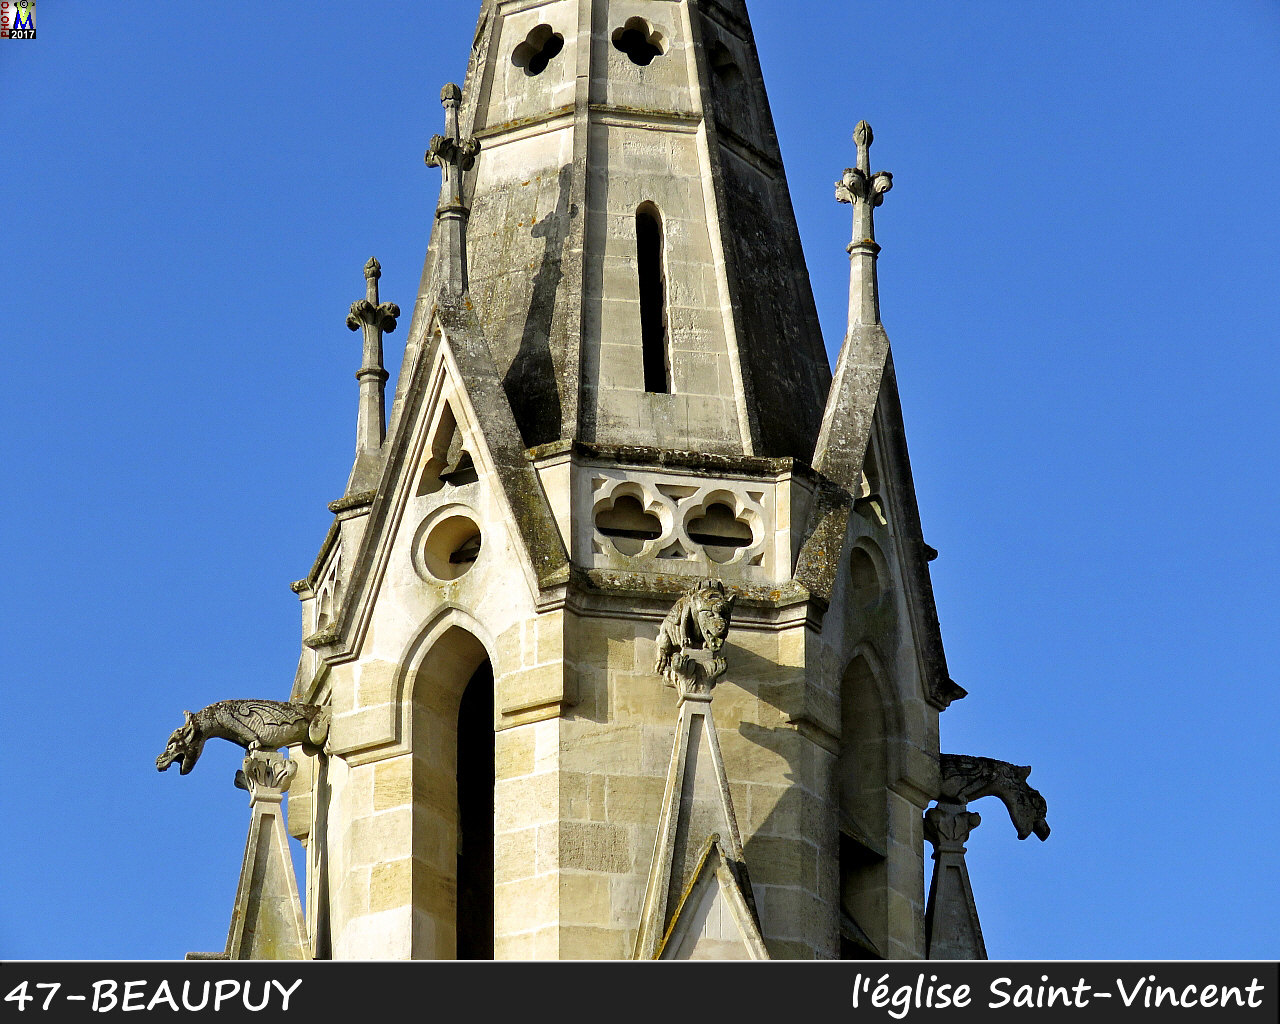 47BEAUPUY_eglise_1010.jpg